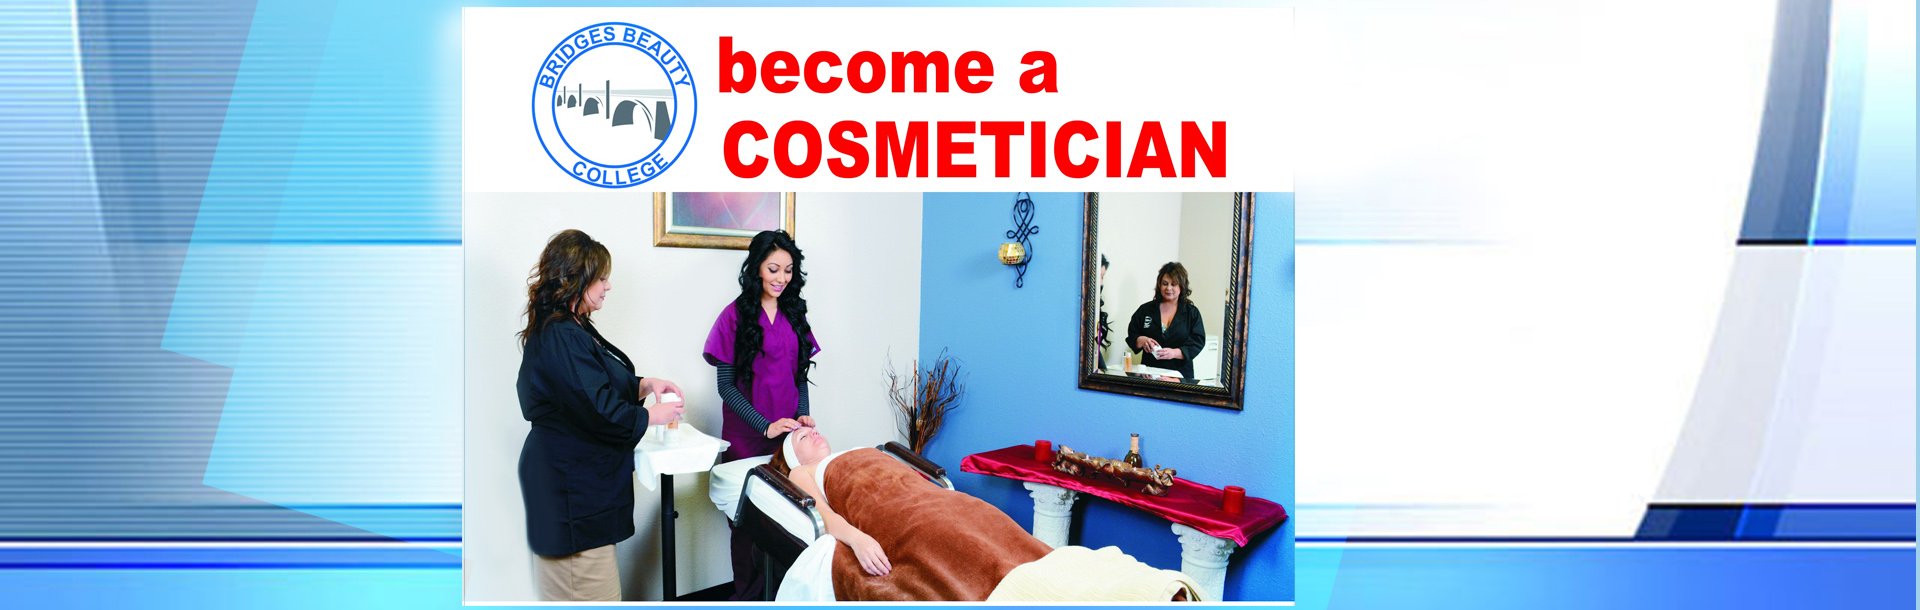 BRIDGES BEAUTY COLLEGE